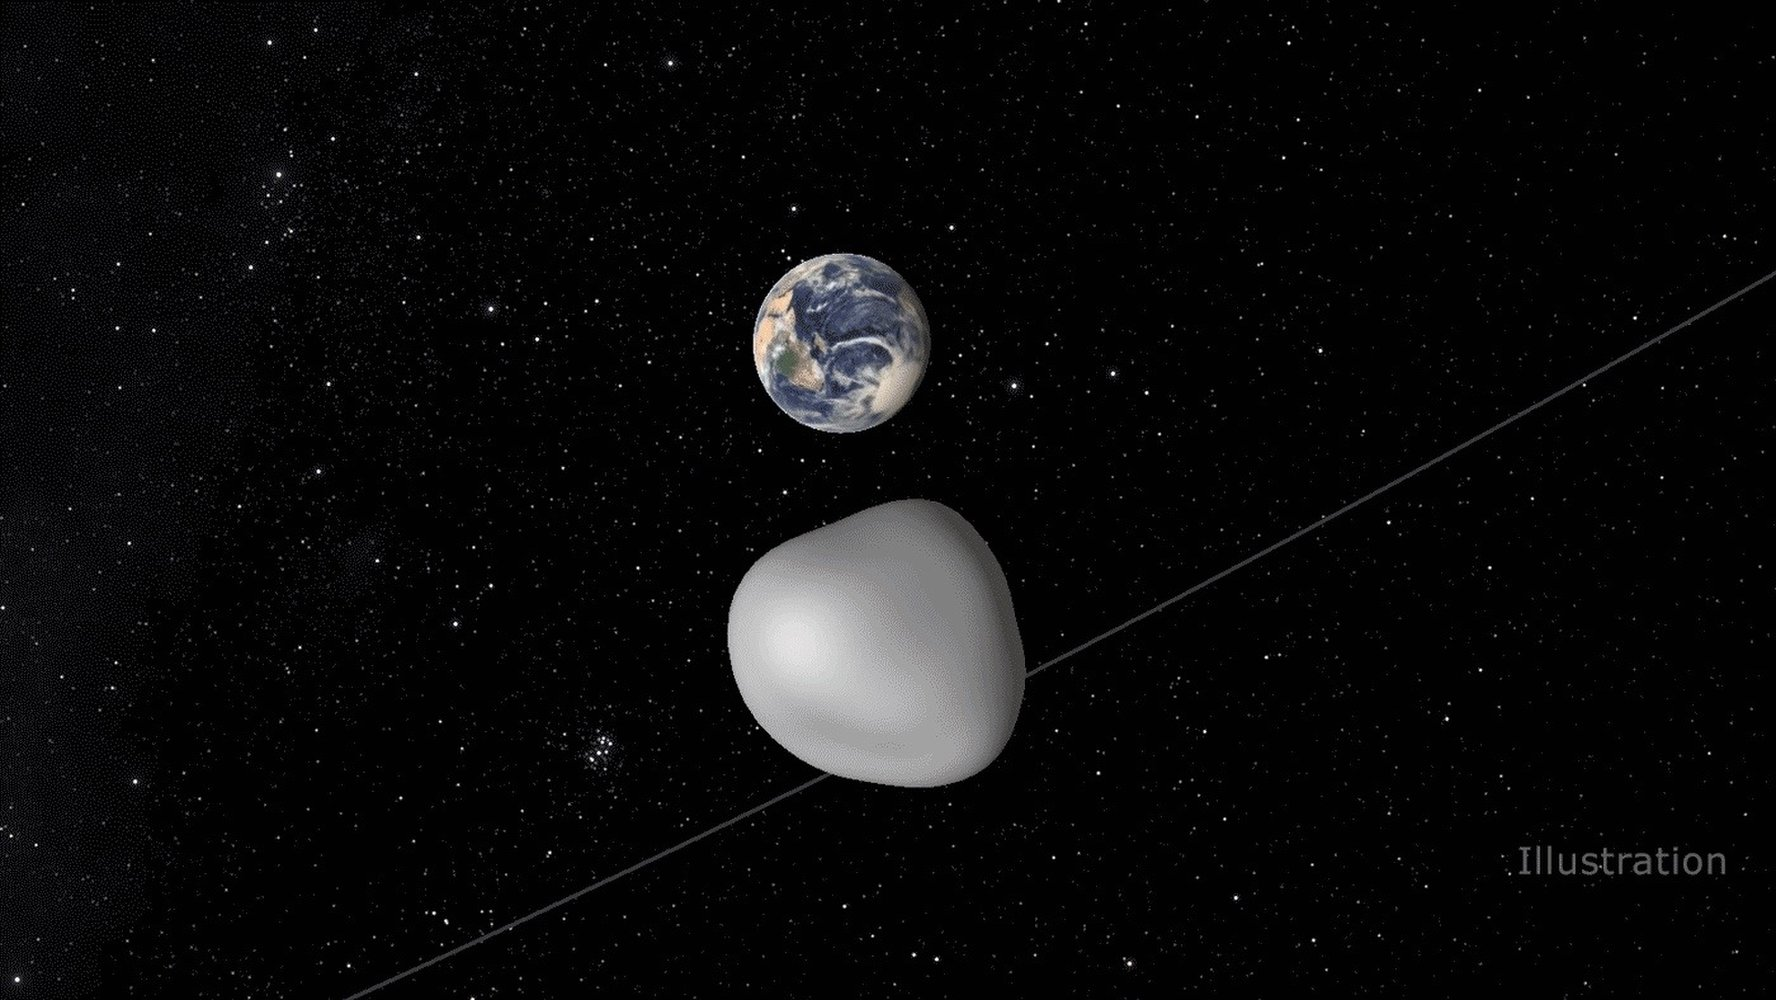 Small Asteroid Gives Earth a Close Shave in Highly Anticipated Flyby https://t.co/DzOBExlrQC https://t.co/yz5RK0Kd61